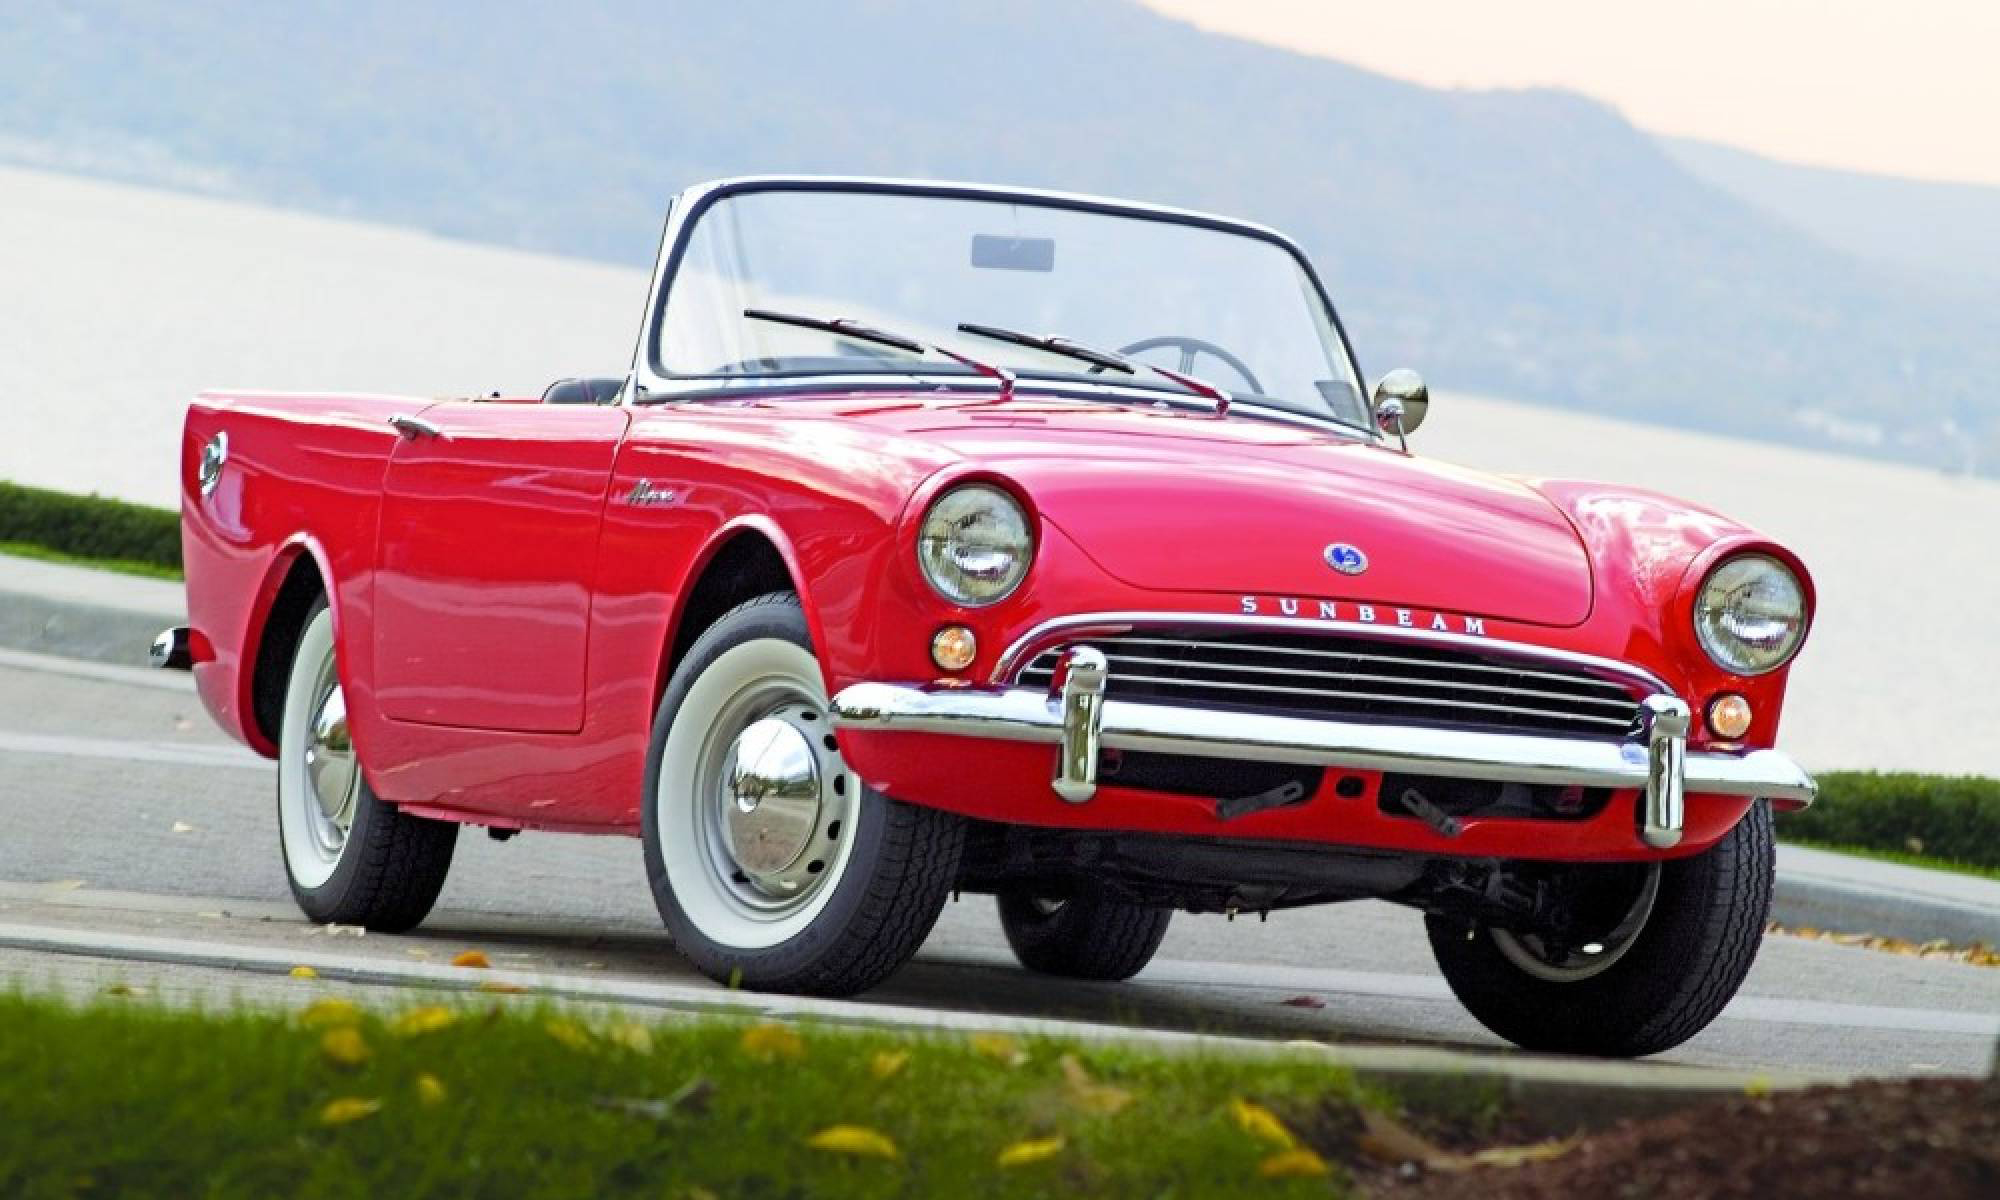 The Sunbeam Alpine Owners of America